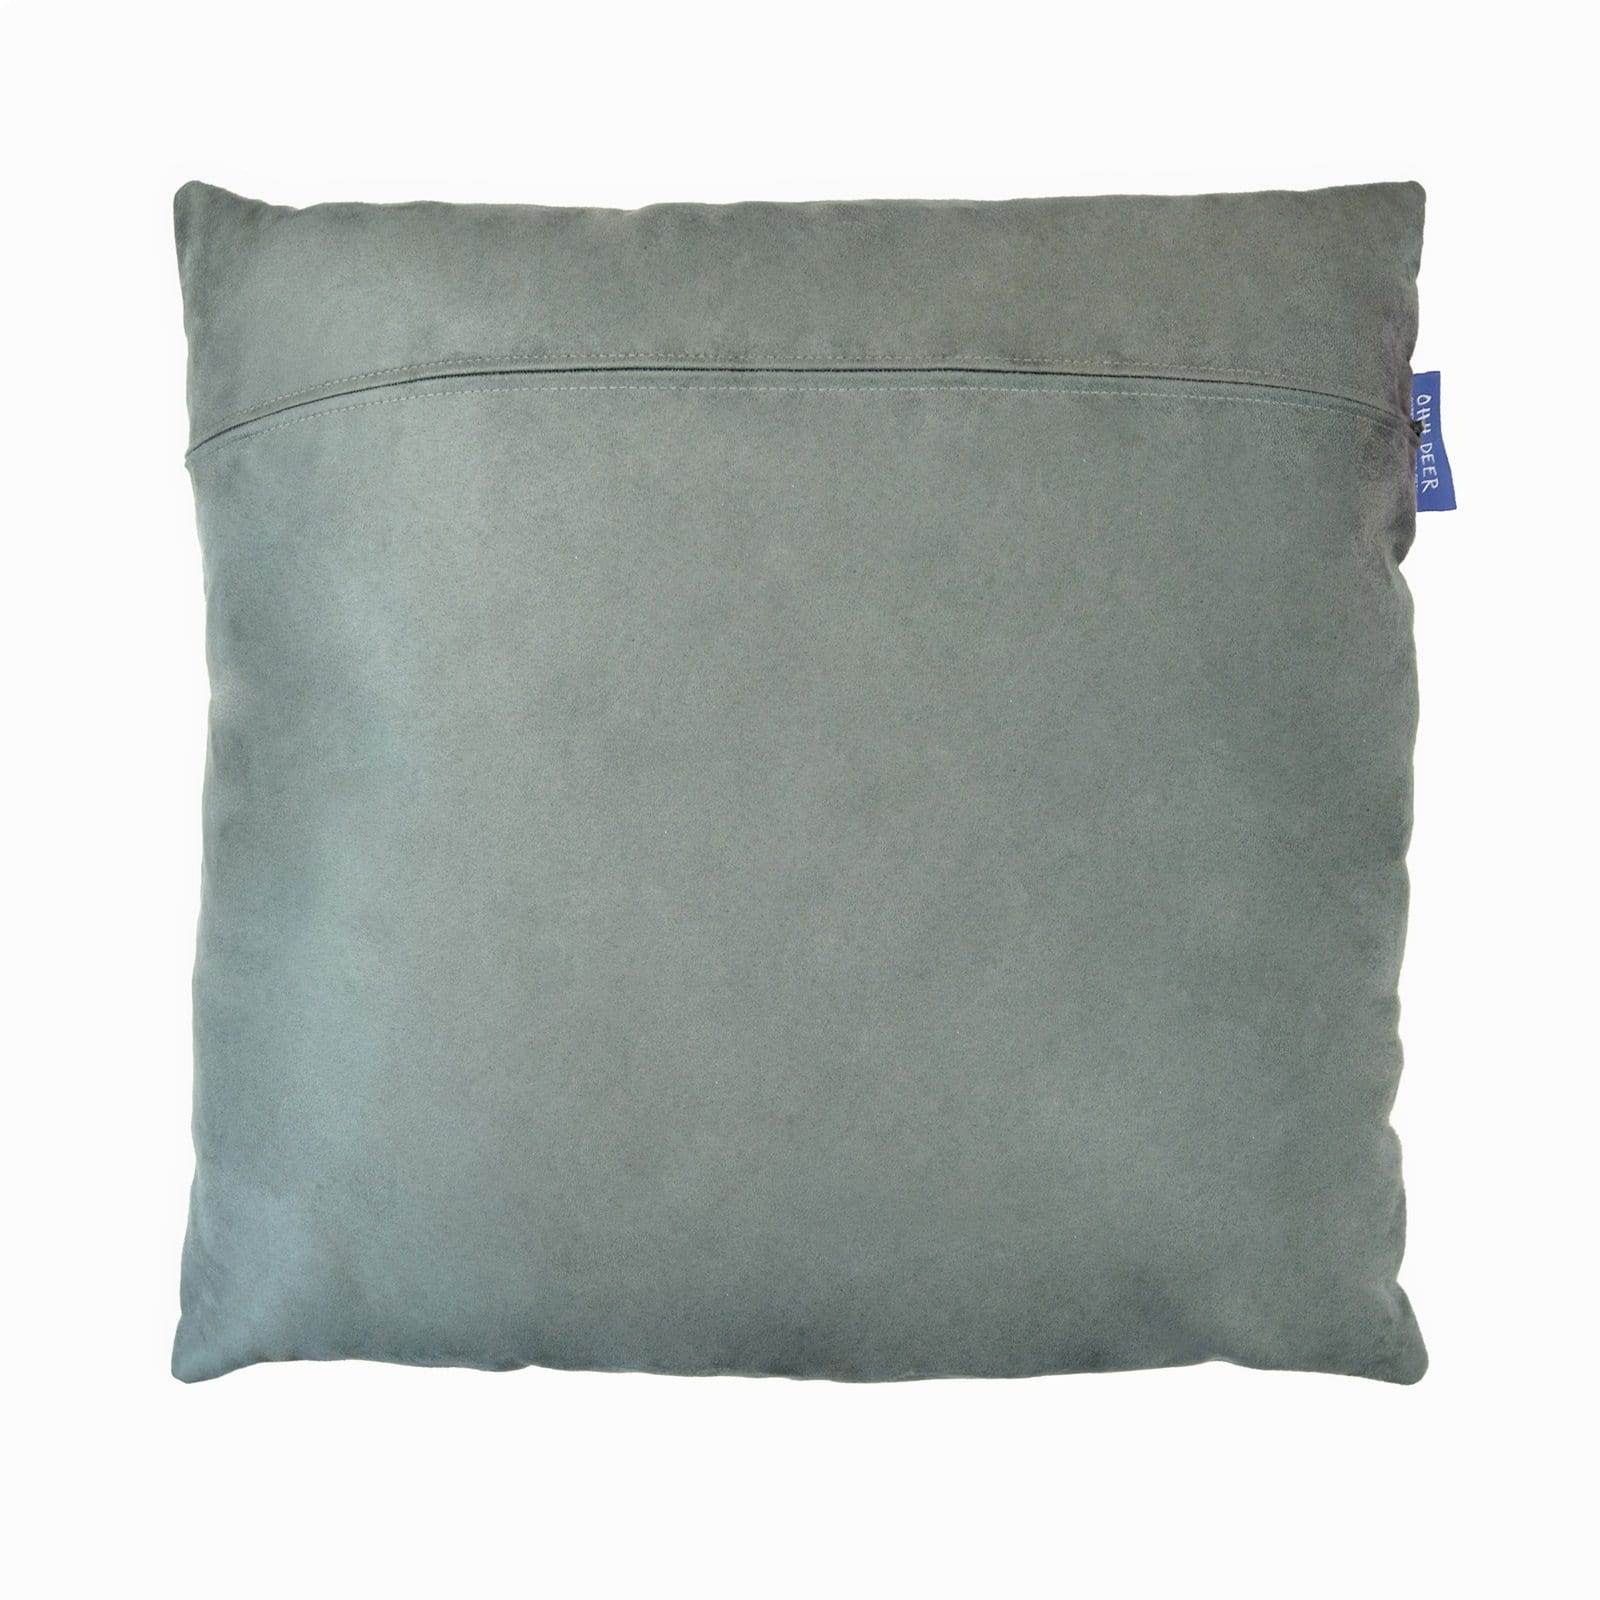 Inhale Exhale Cushion